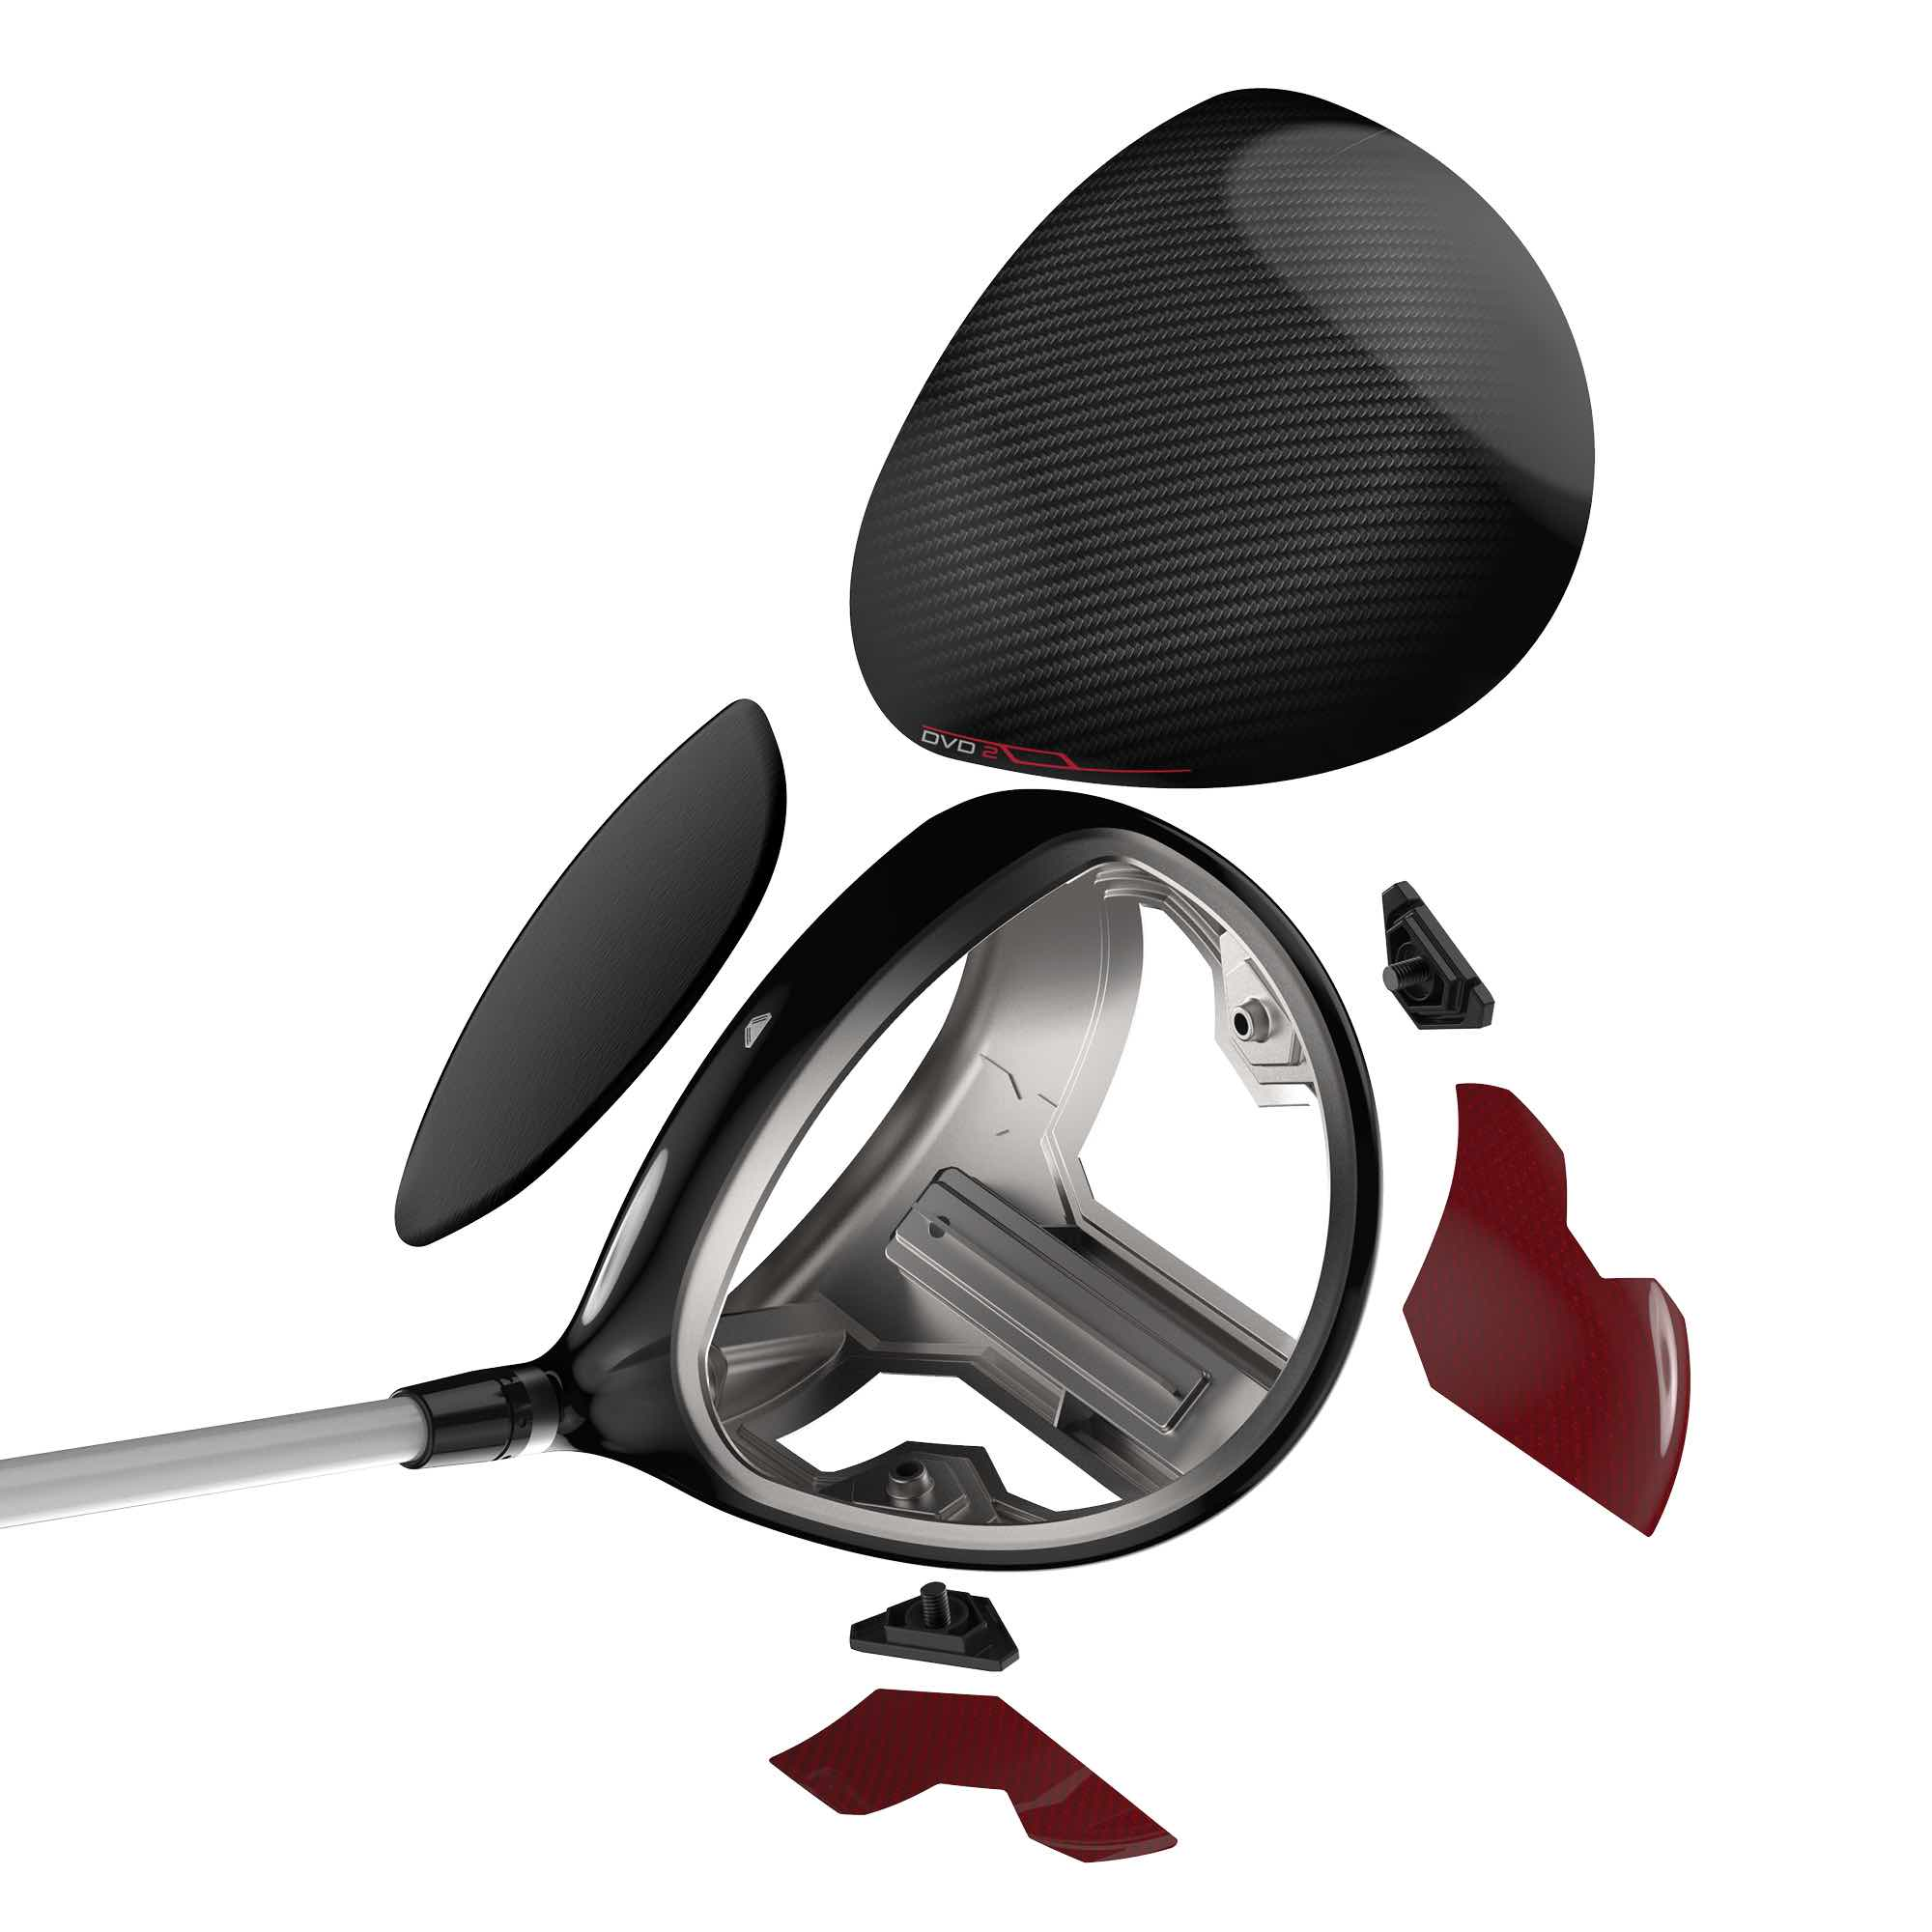 Cortex wins Wilson Golf Driver vs Driver 2